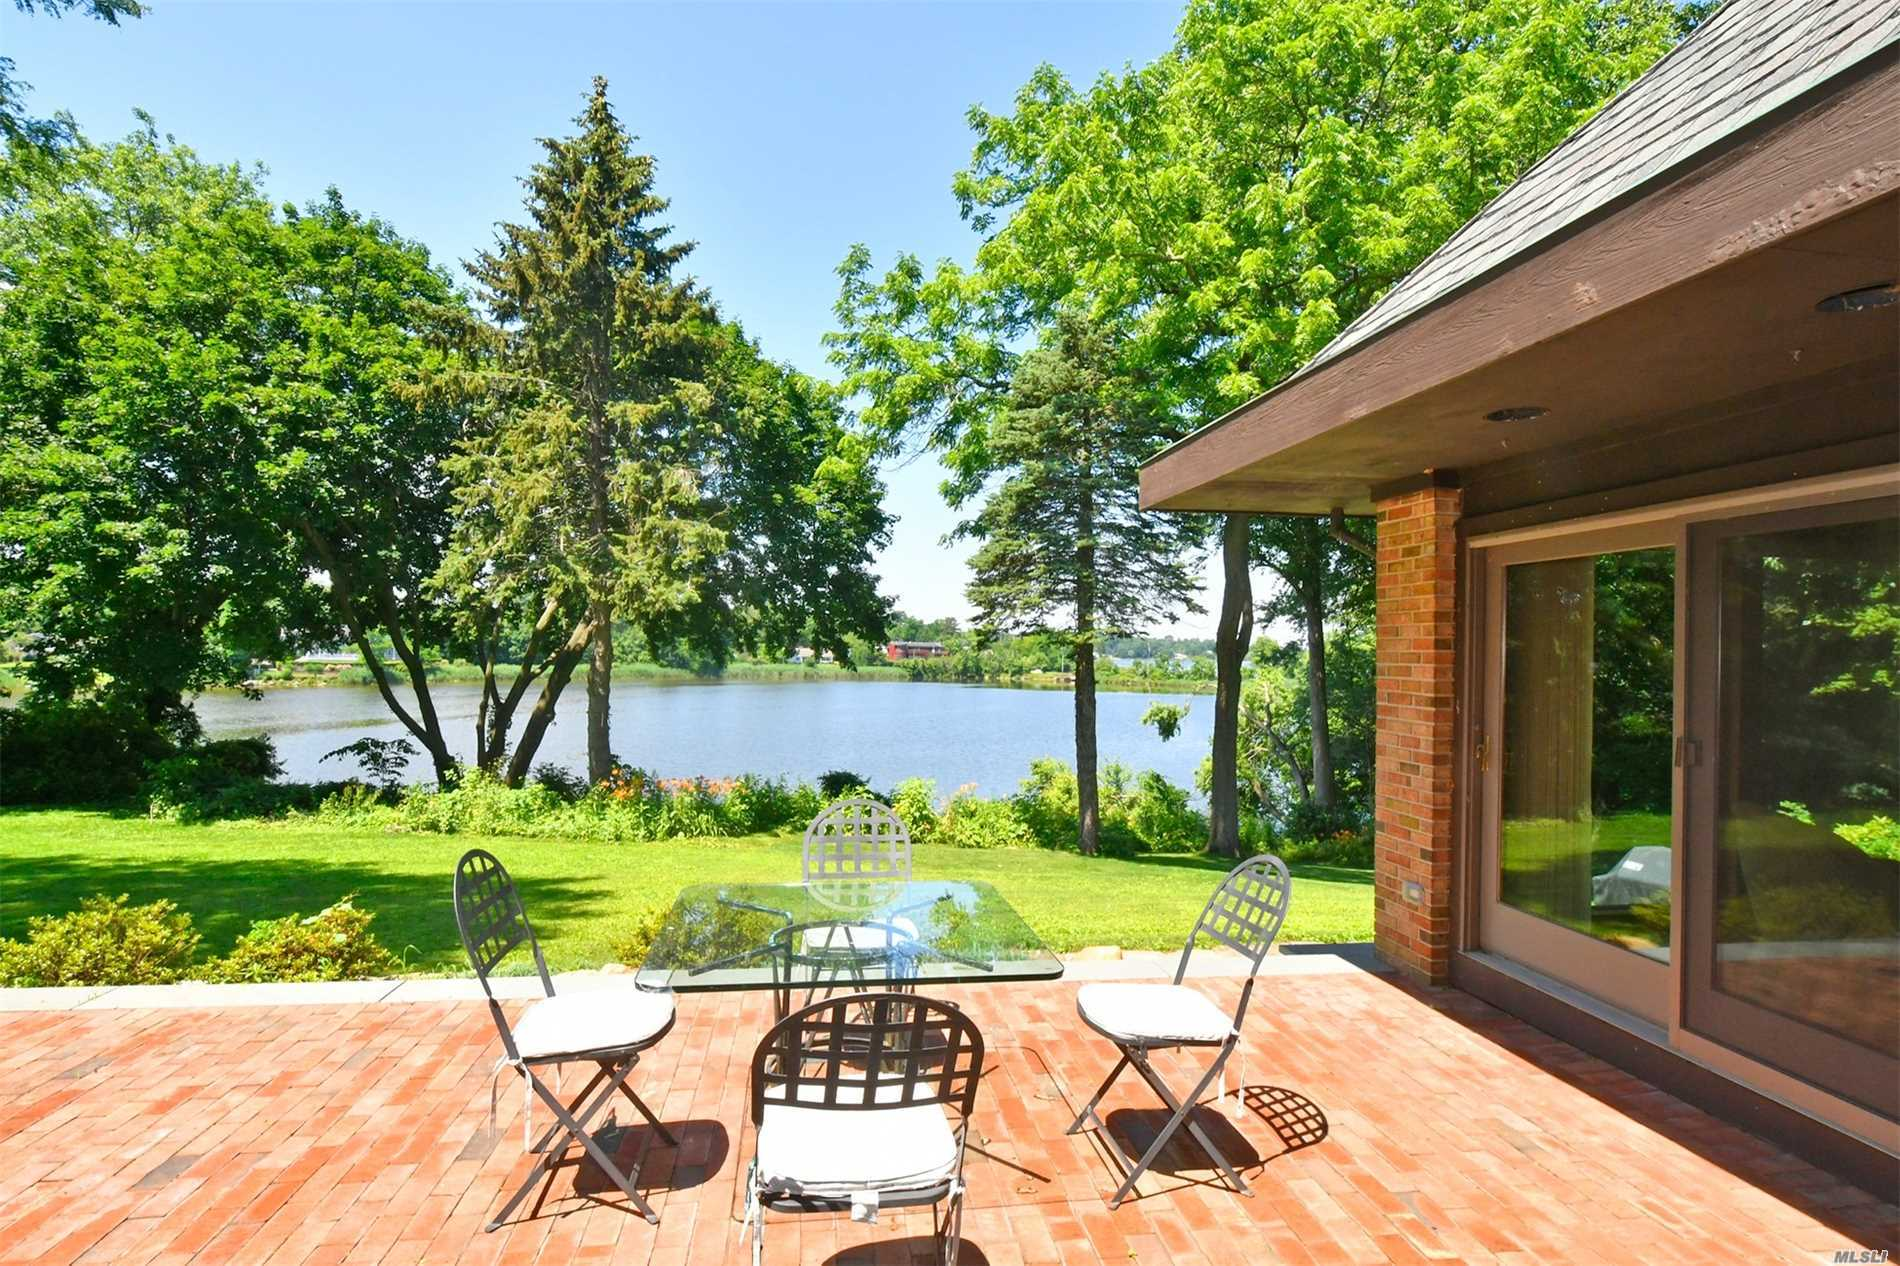 Welcome To This Unique, Custom Built Home Located On Leeds Pond With Views Of Manhasset Bay. A Long Driveway Leading To The Home Offers An Acre Of Land, Privacy And Tranquility Not Seen In Most Homes. Fabulous Design And Layout To This California Inspired Home, This Home Is Large But Welcoming & Its Lg Picture Windows Let You Enjoy The Views & Birds From The Comfort Of Almost Every Room. Its Location Near Plandome Station & Country Club Is Priceless.